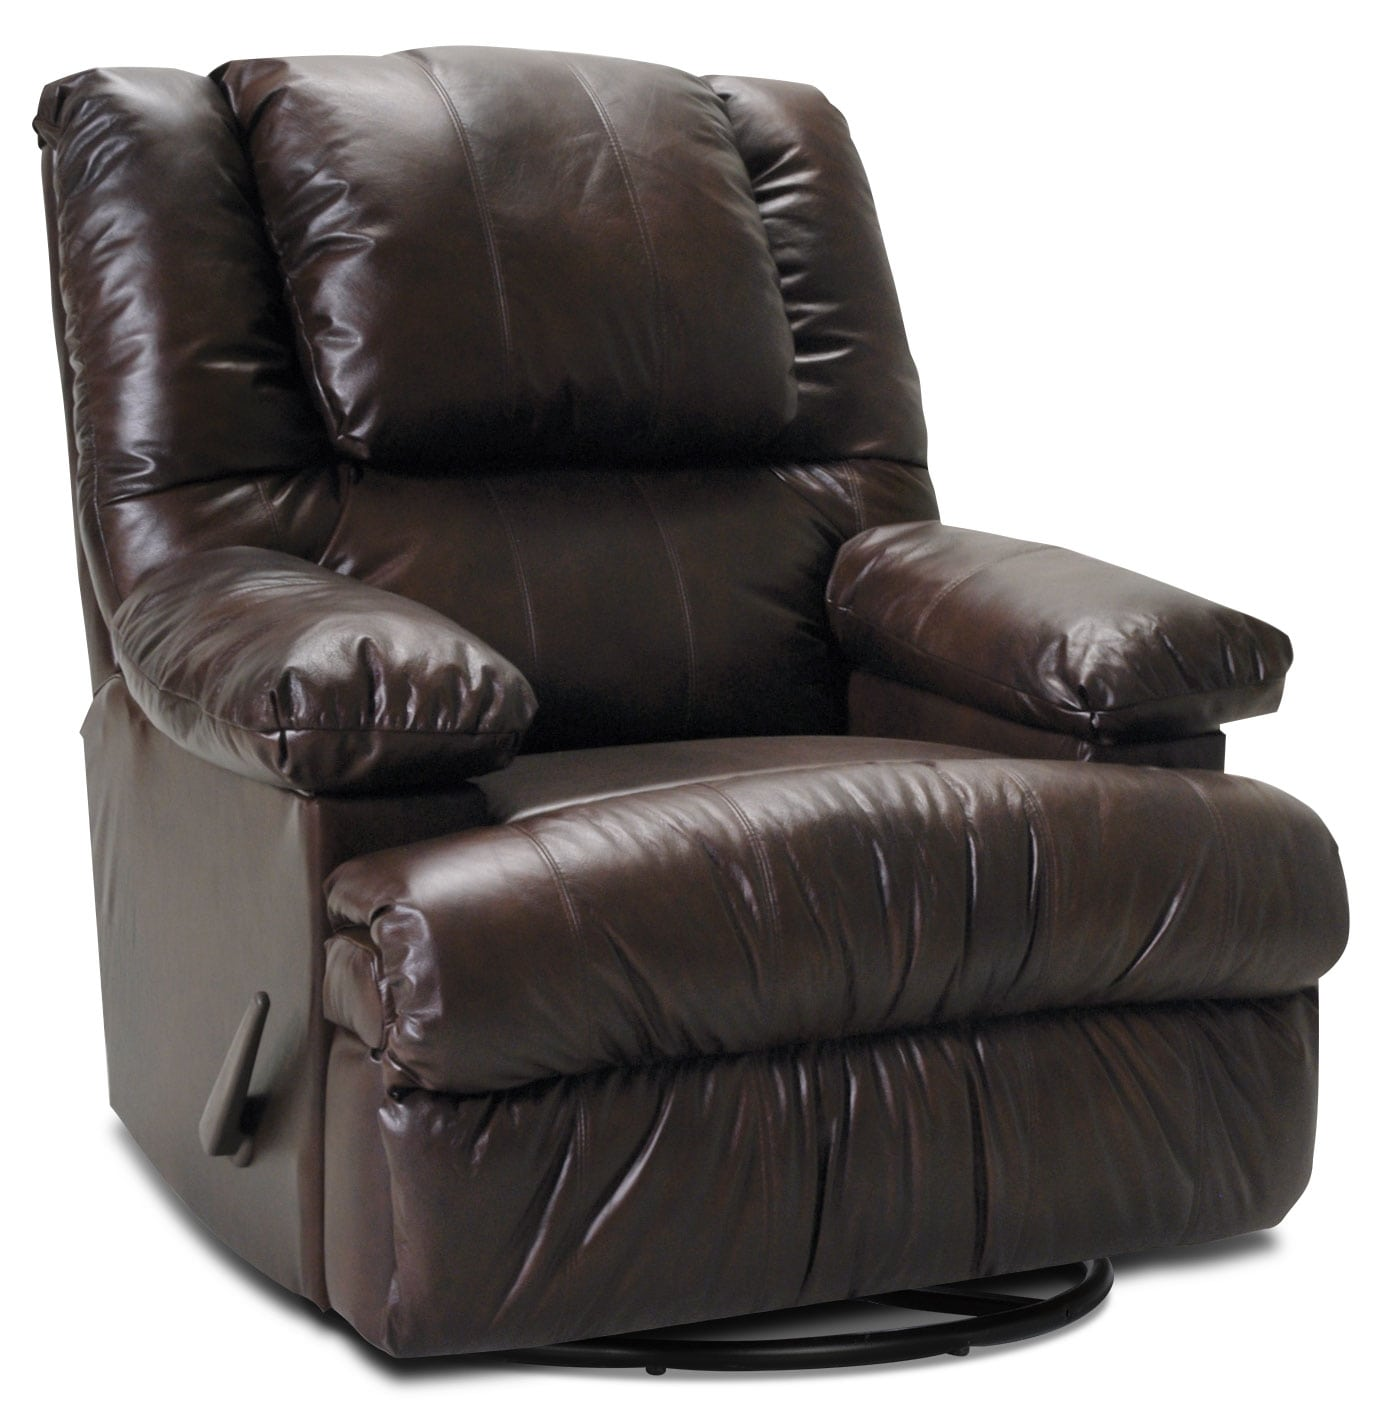 Designed2B Recliner 5598 Genuine Leather Swivel Rocker with Storage Arms - Chocolate